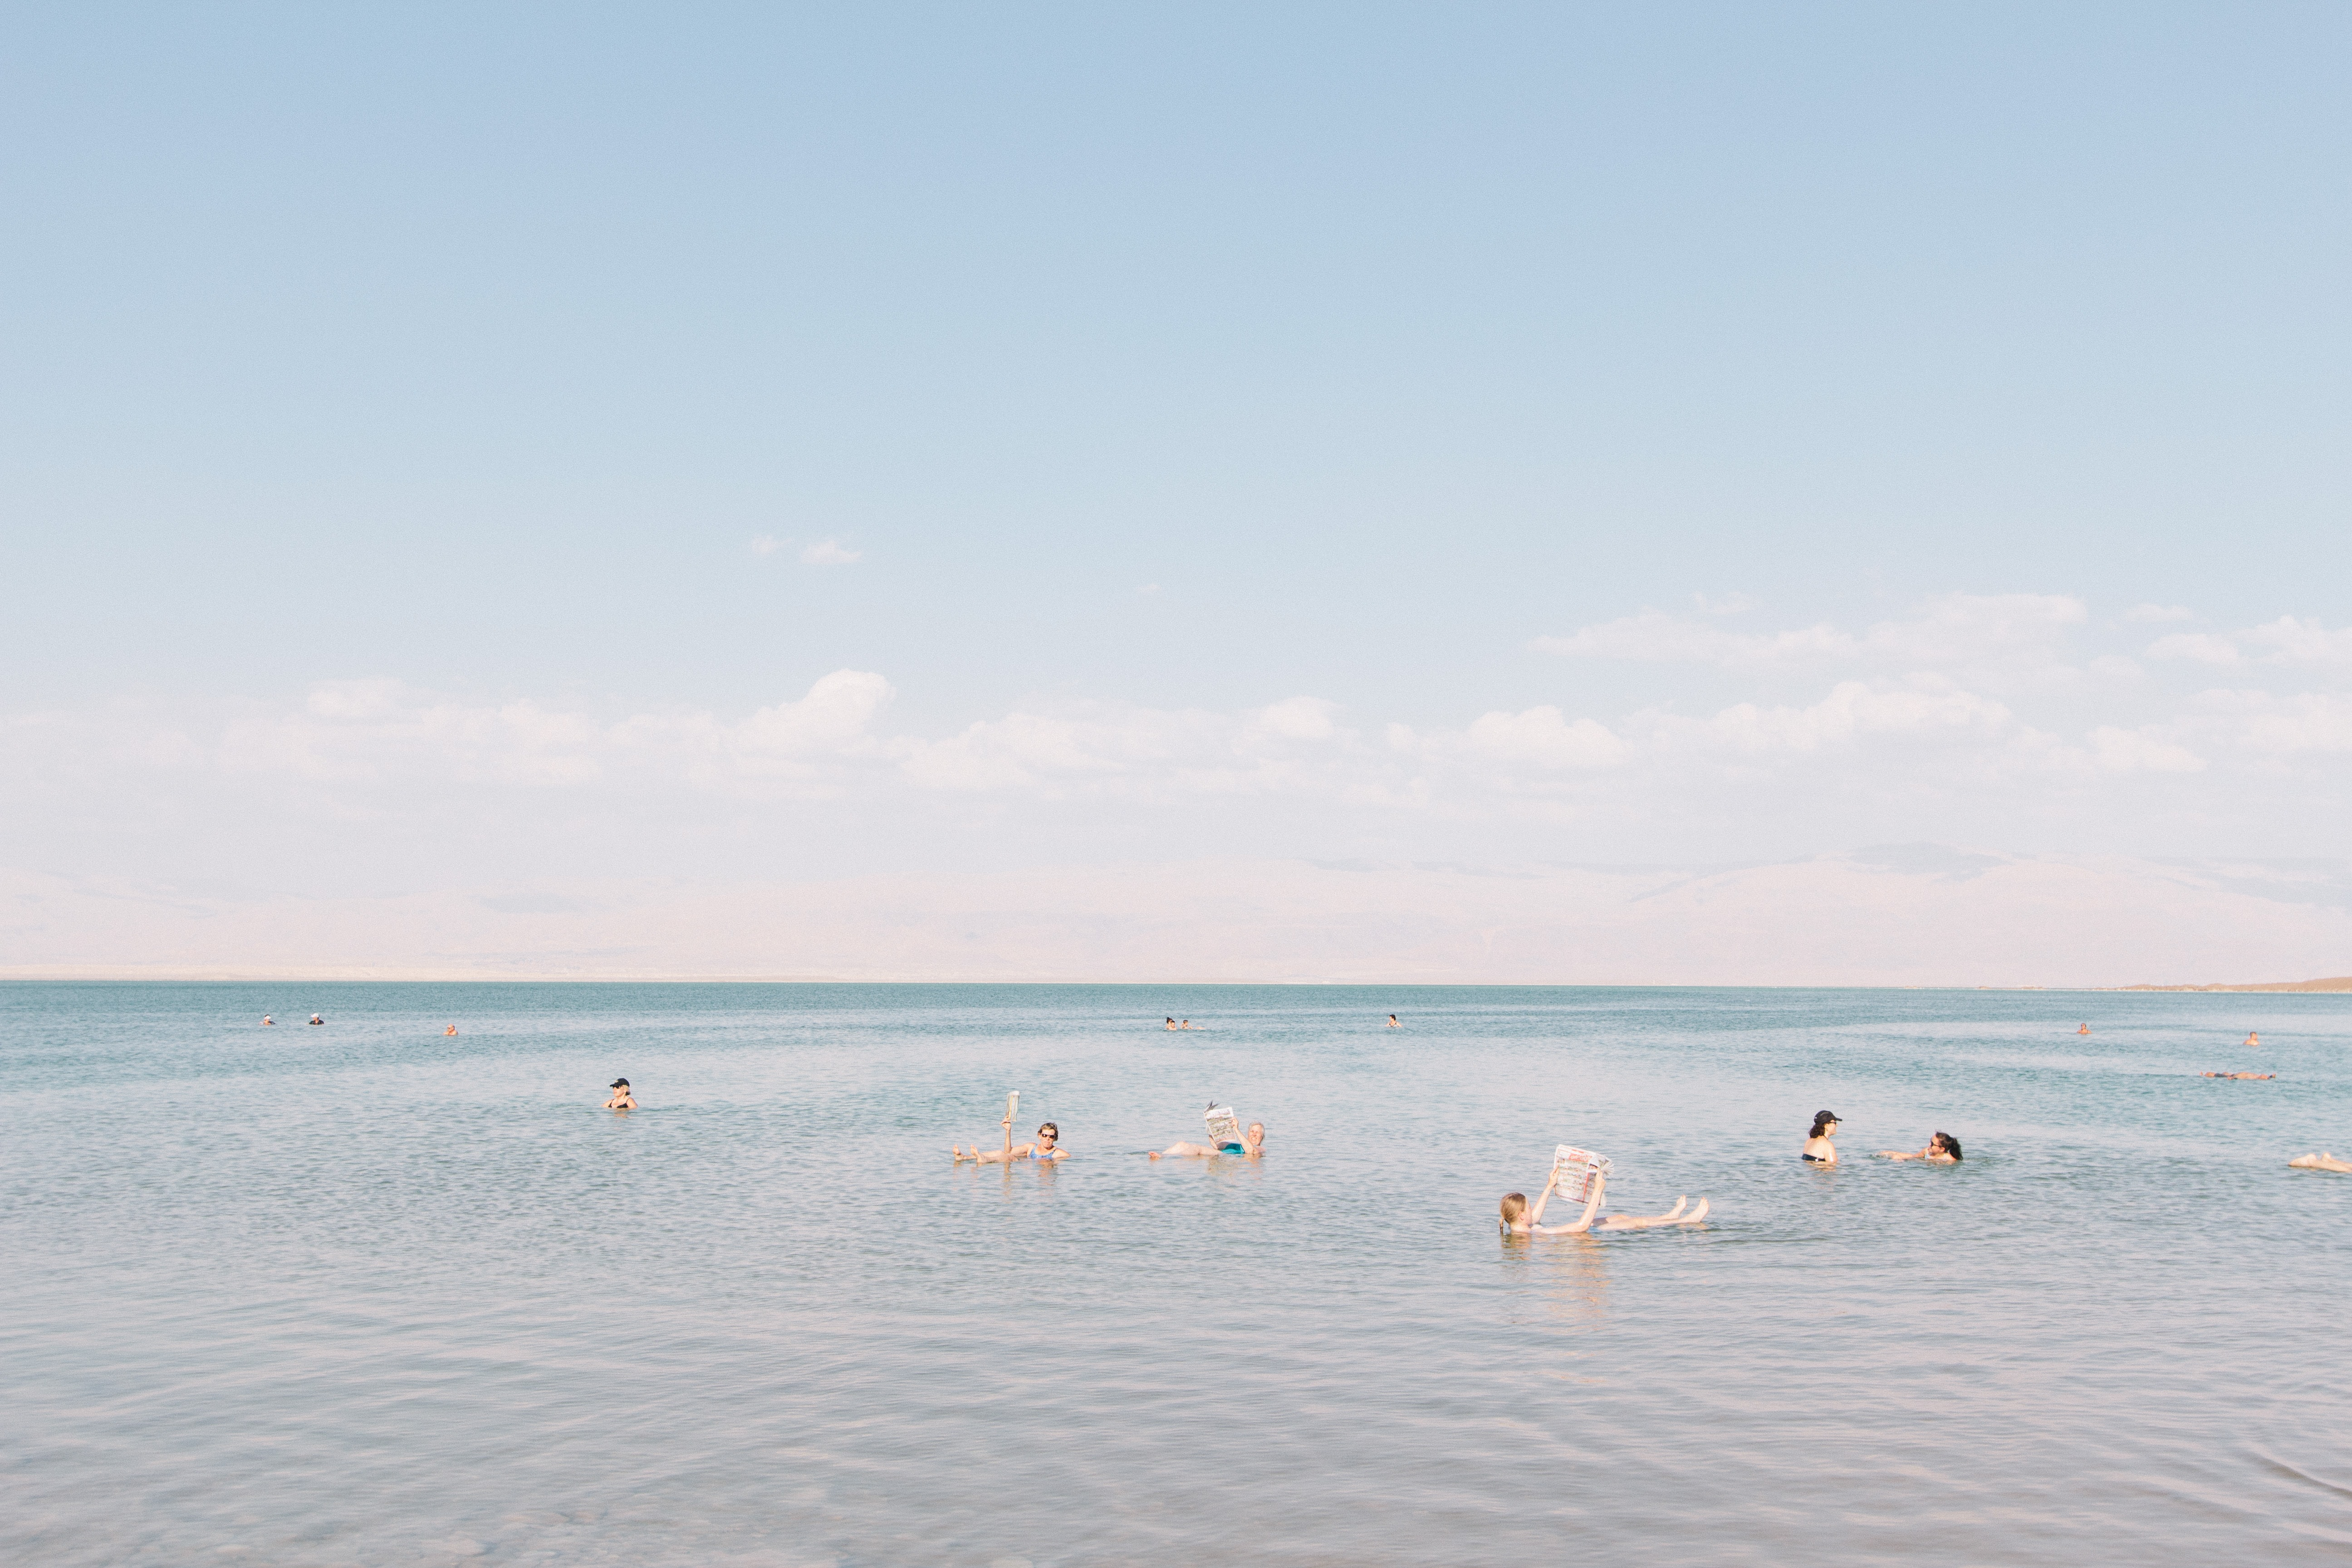 People floating in the very salty water in the Dead Sea